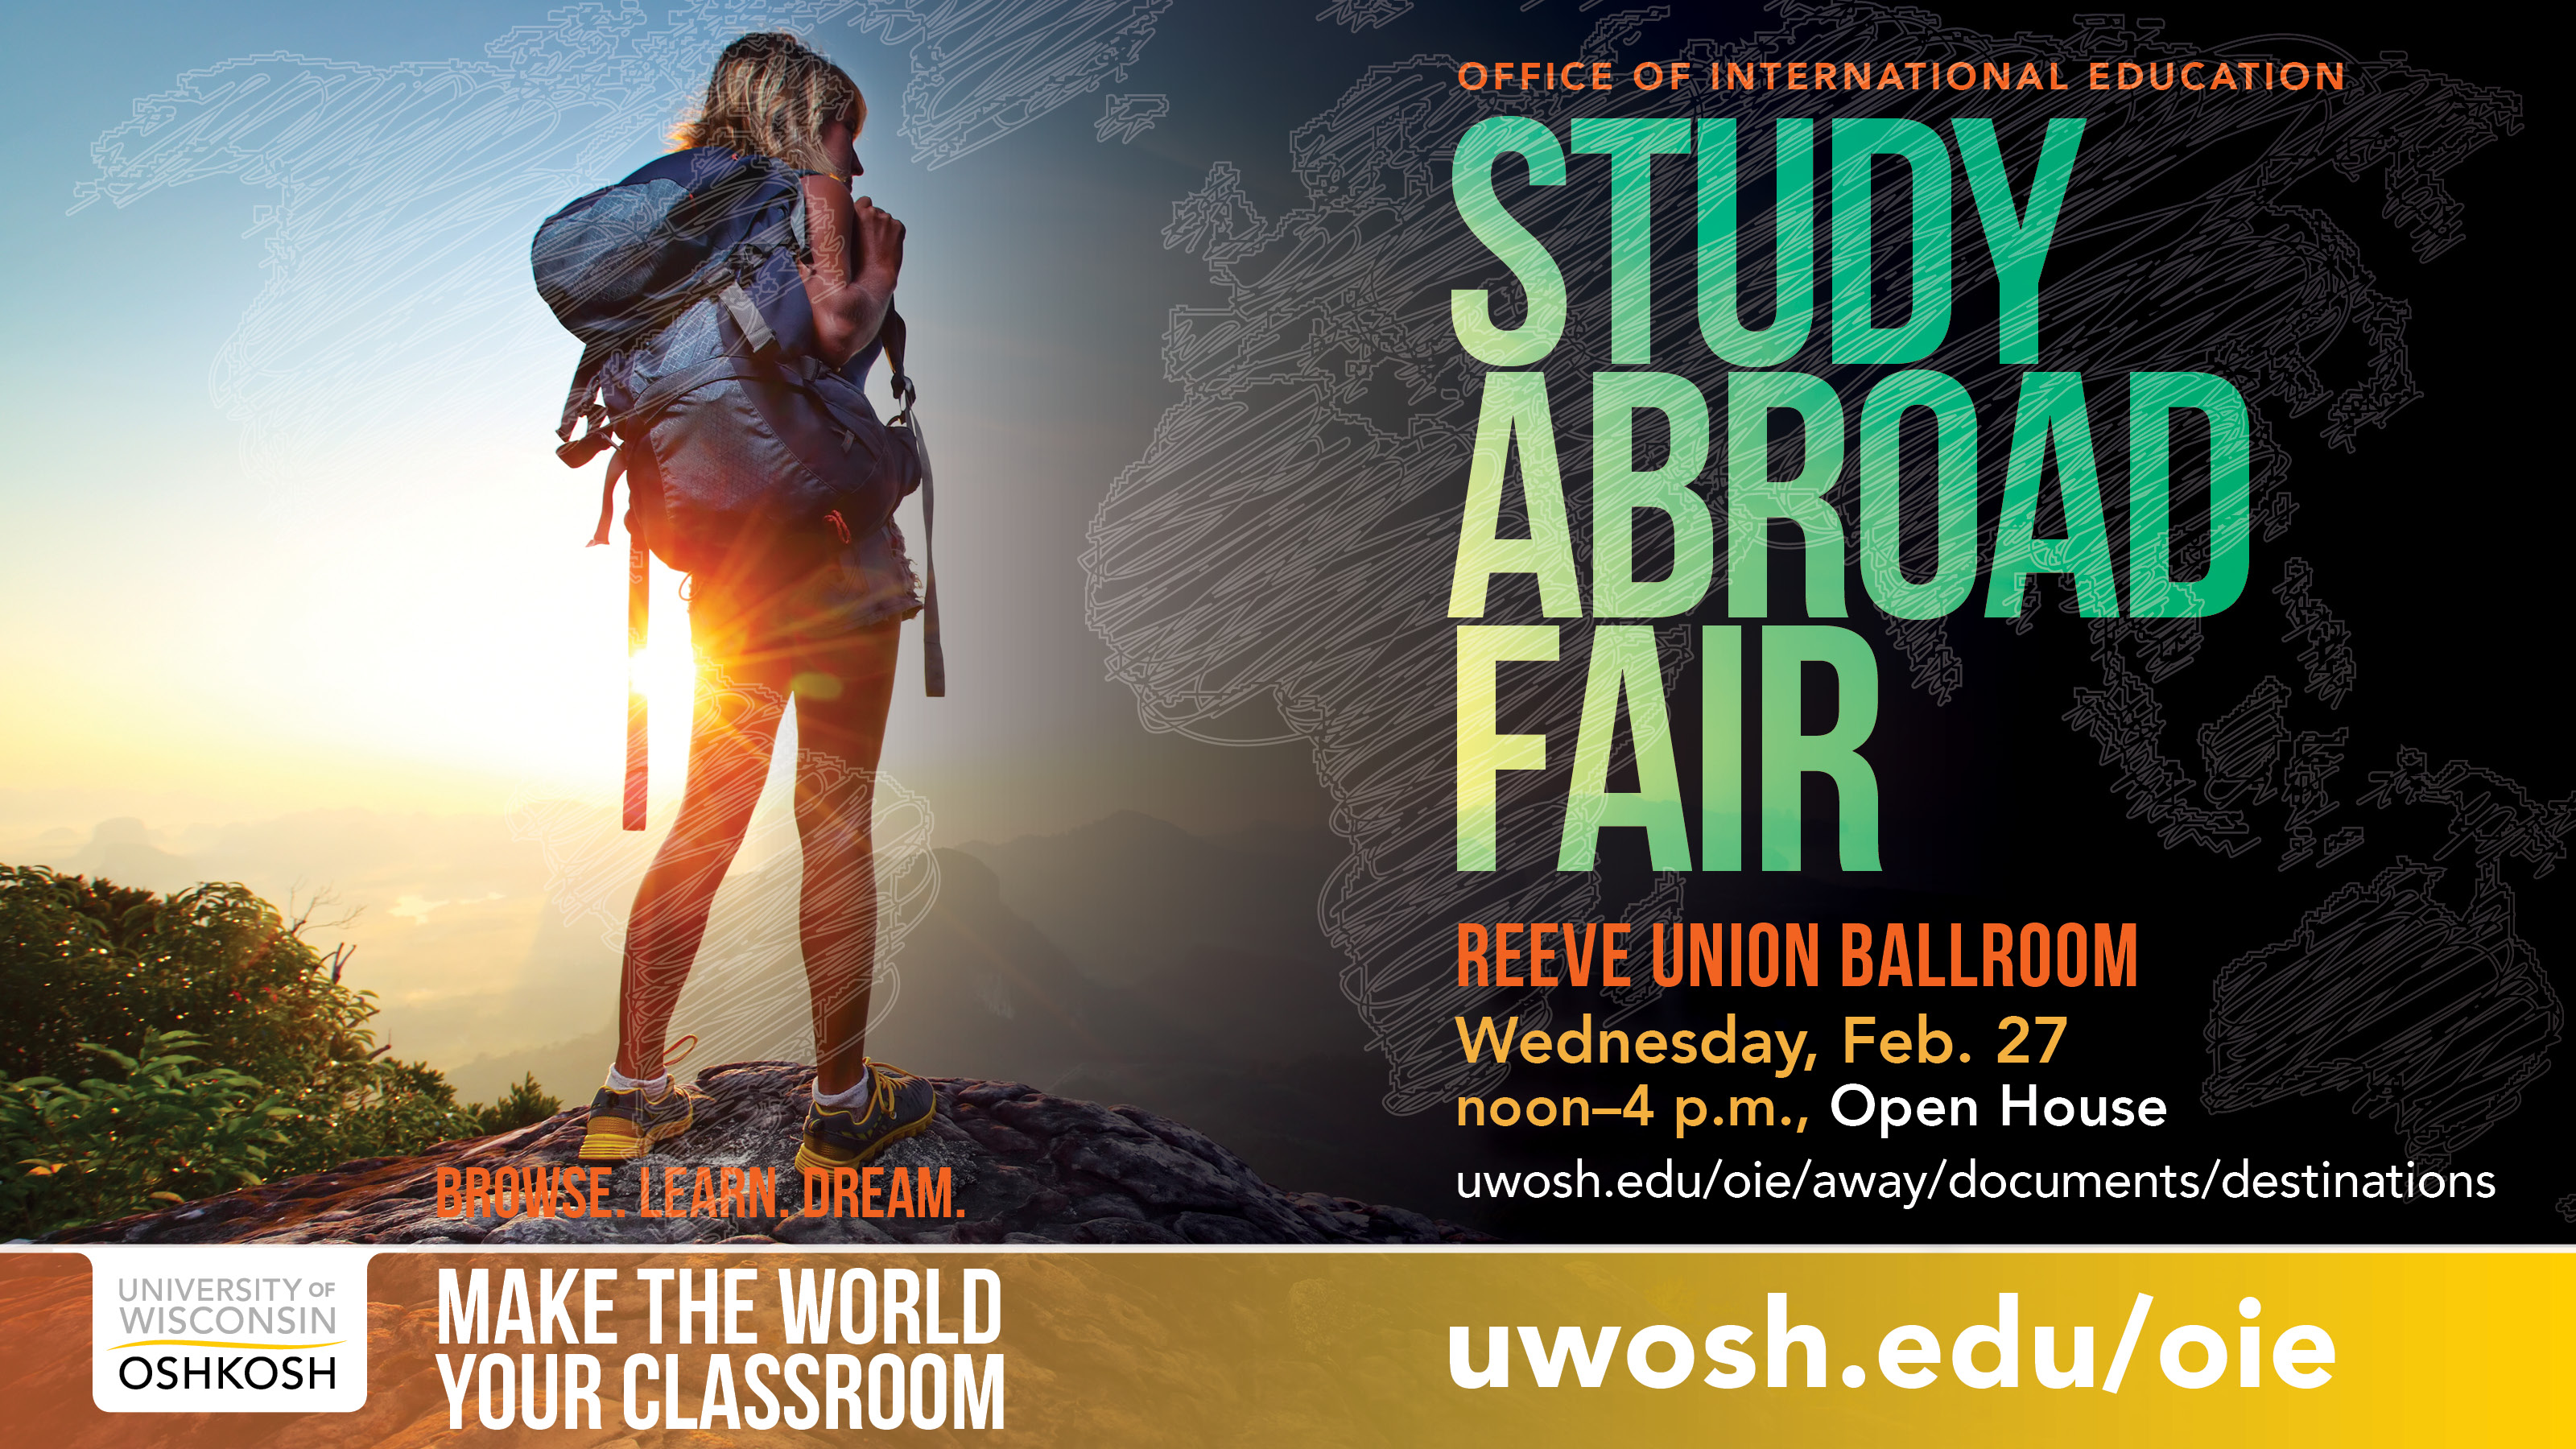 Opportunities showcased Feb. 27 at UW Oshkosh Study Abroad Fair